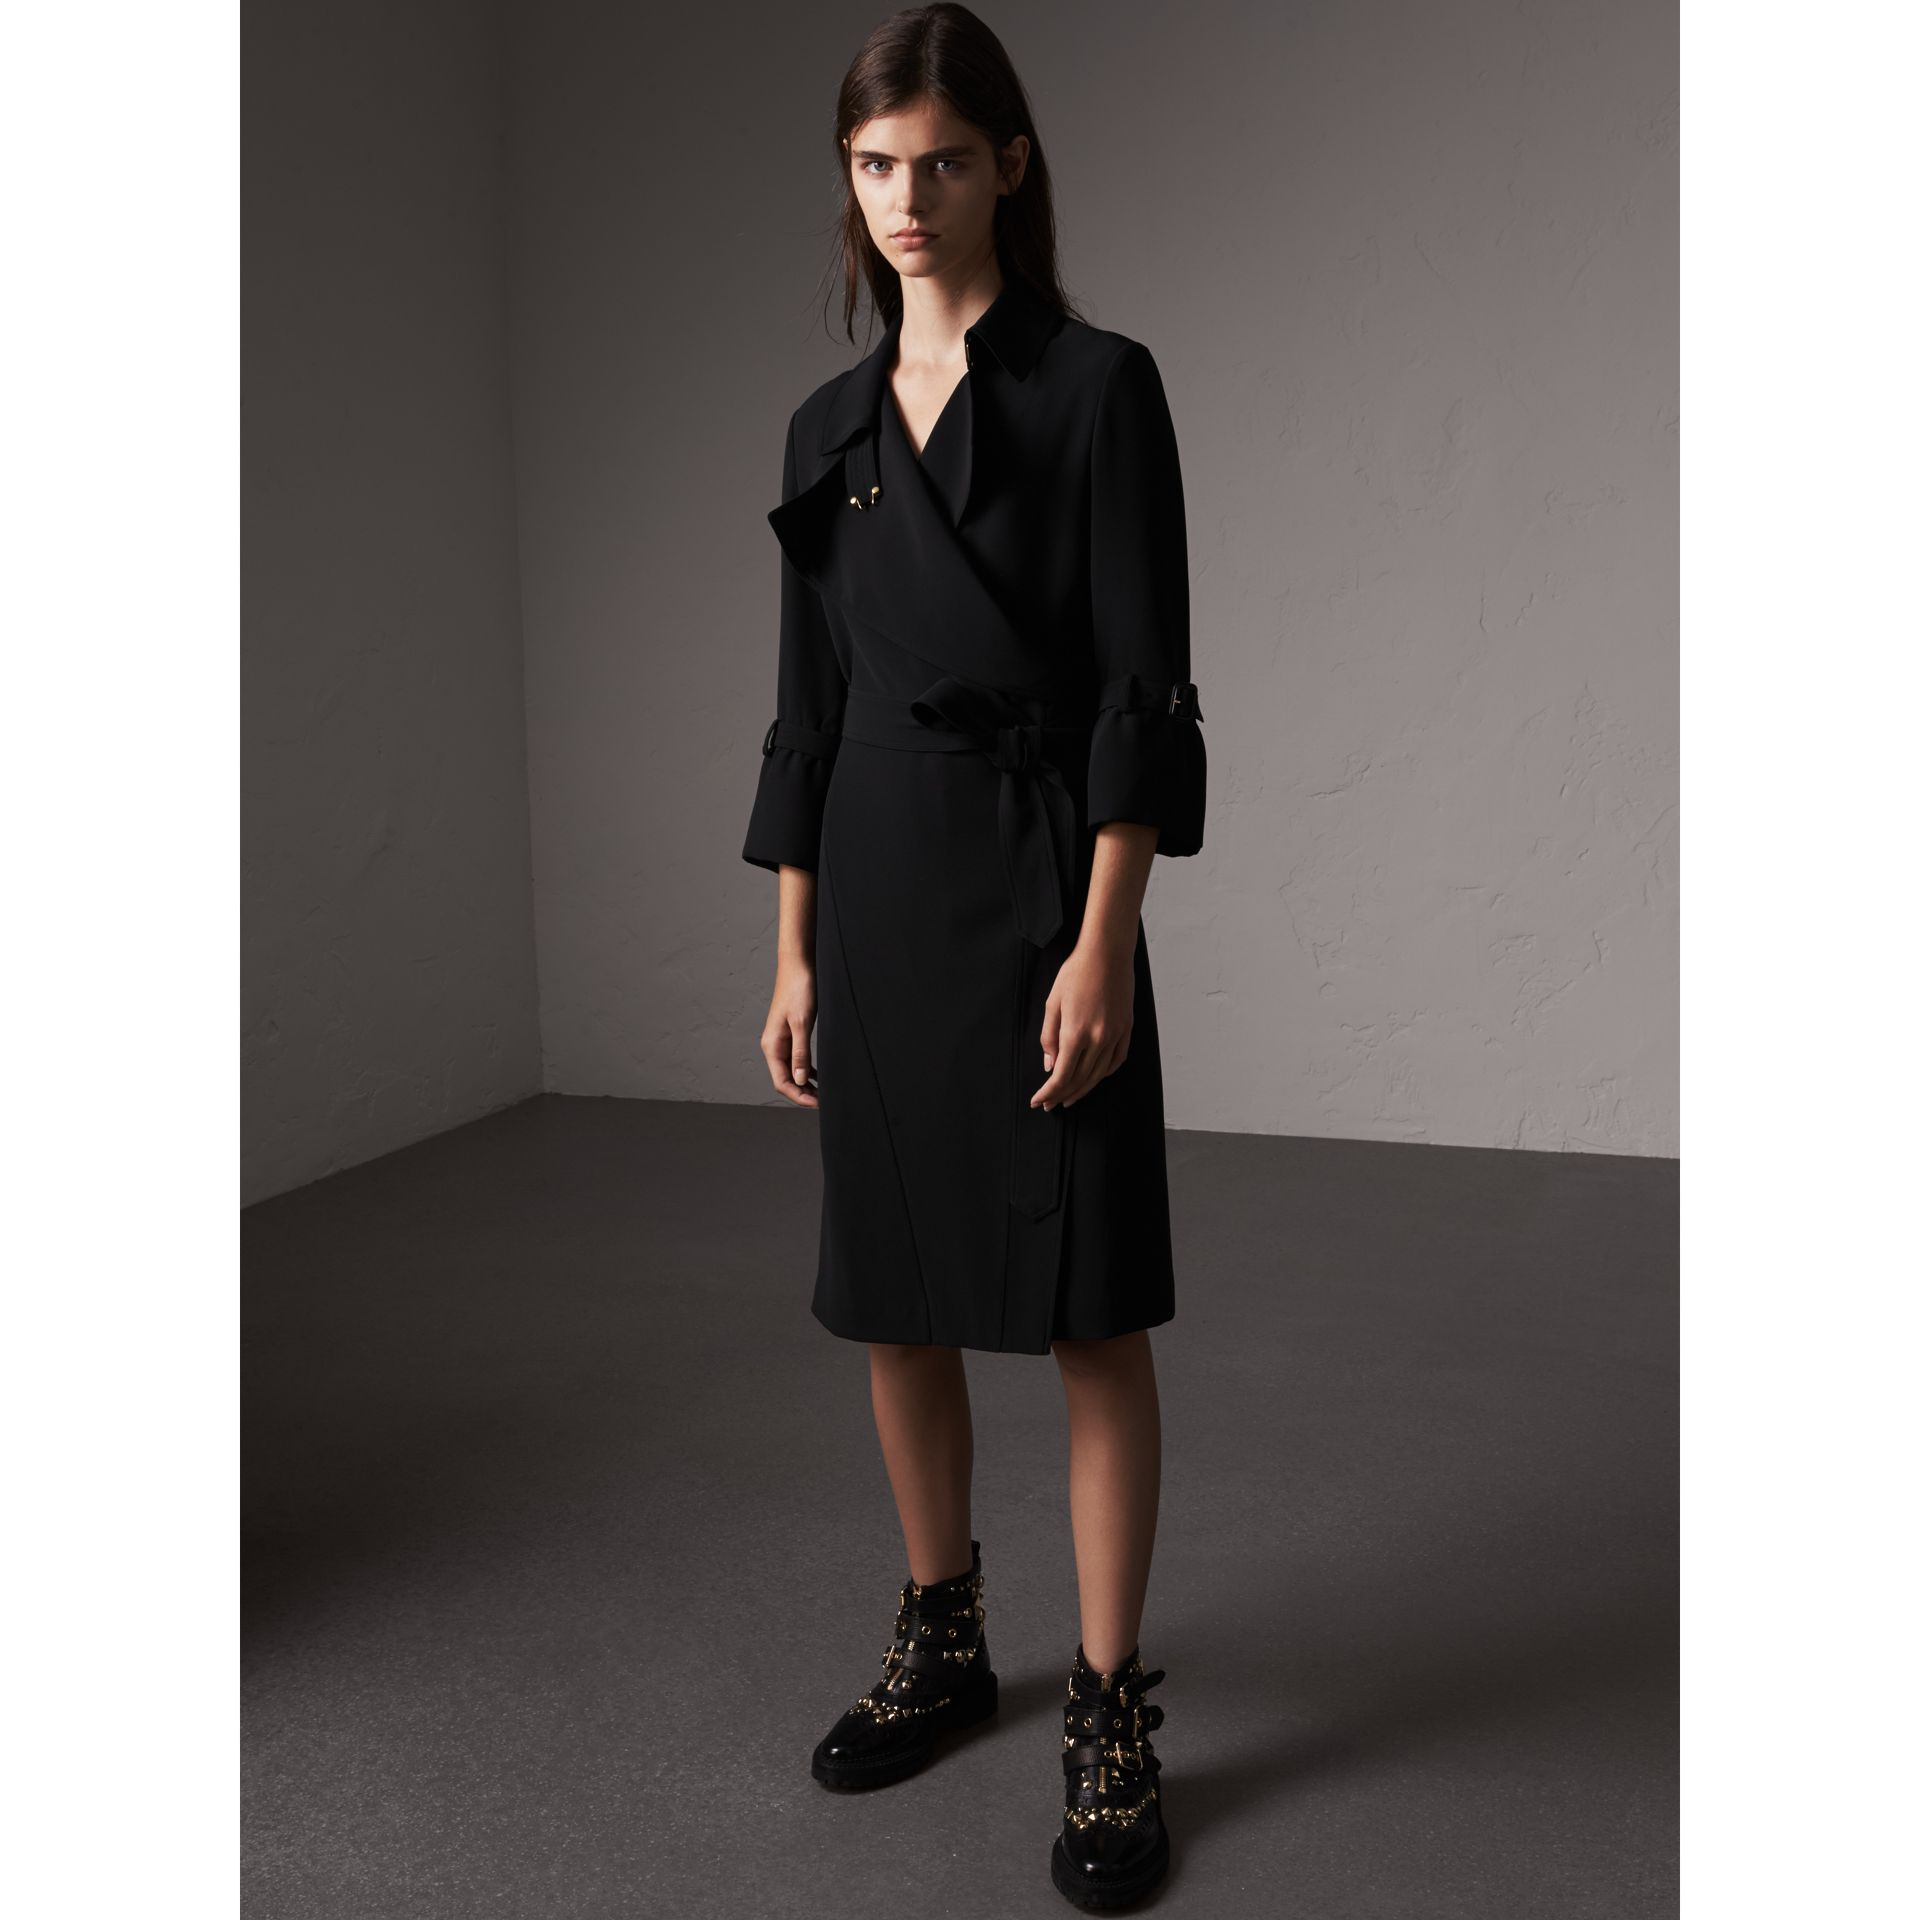 Silk Georgette Trench Wrap Dress in Black - Women | Burberry - gallery image 1